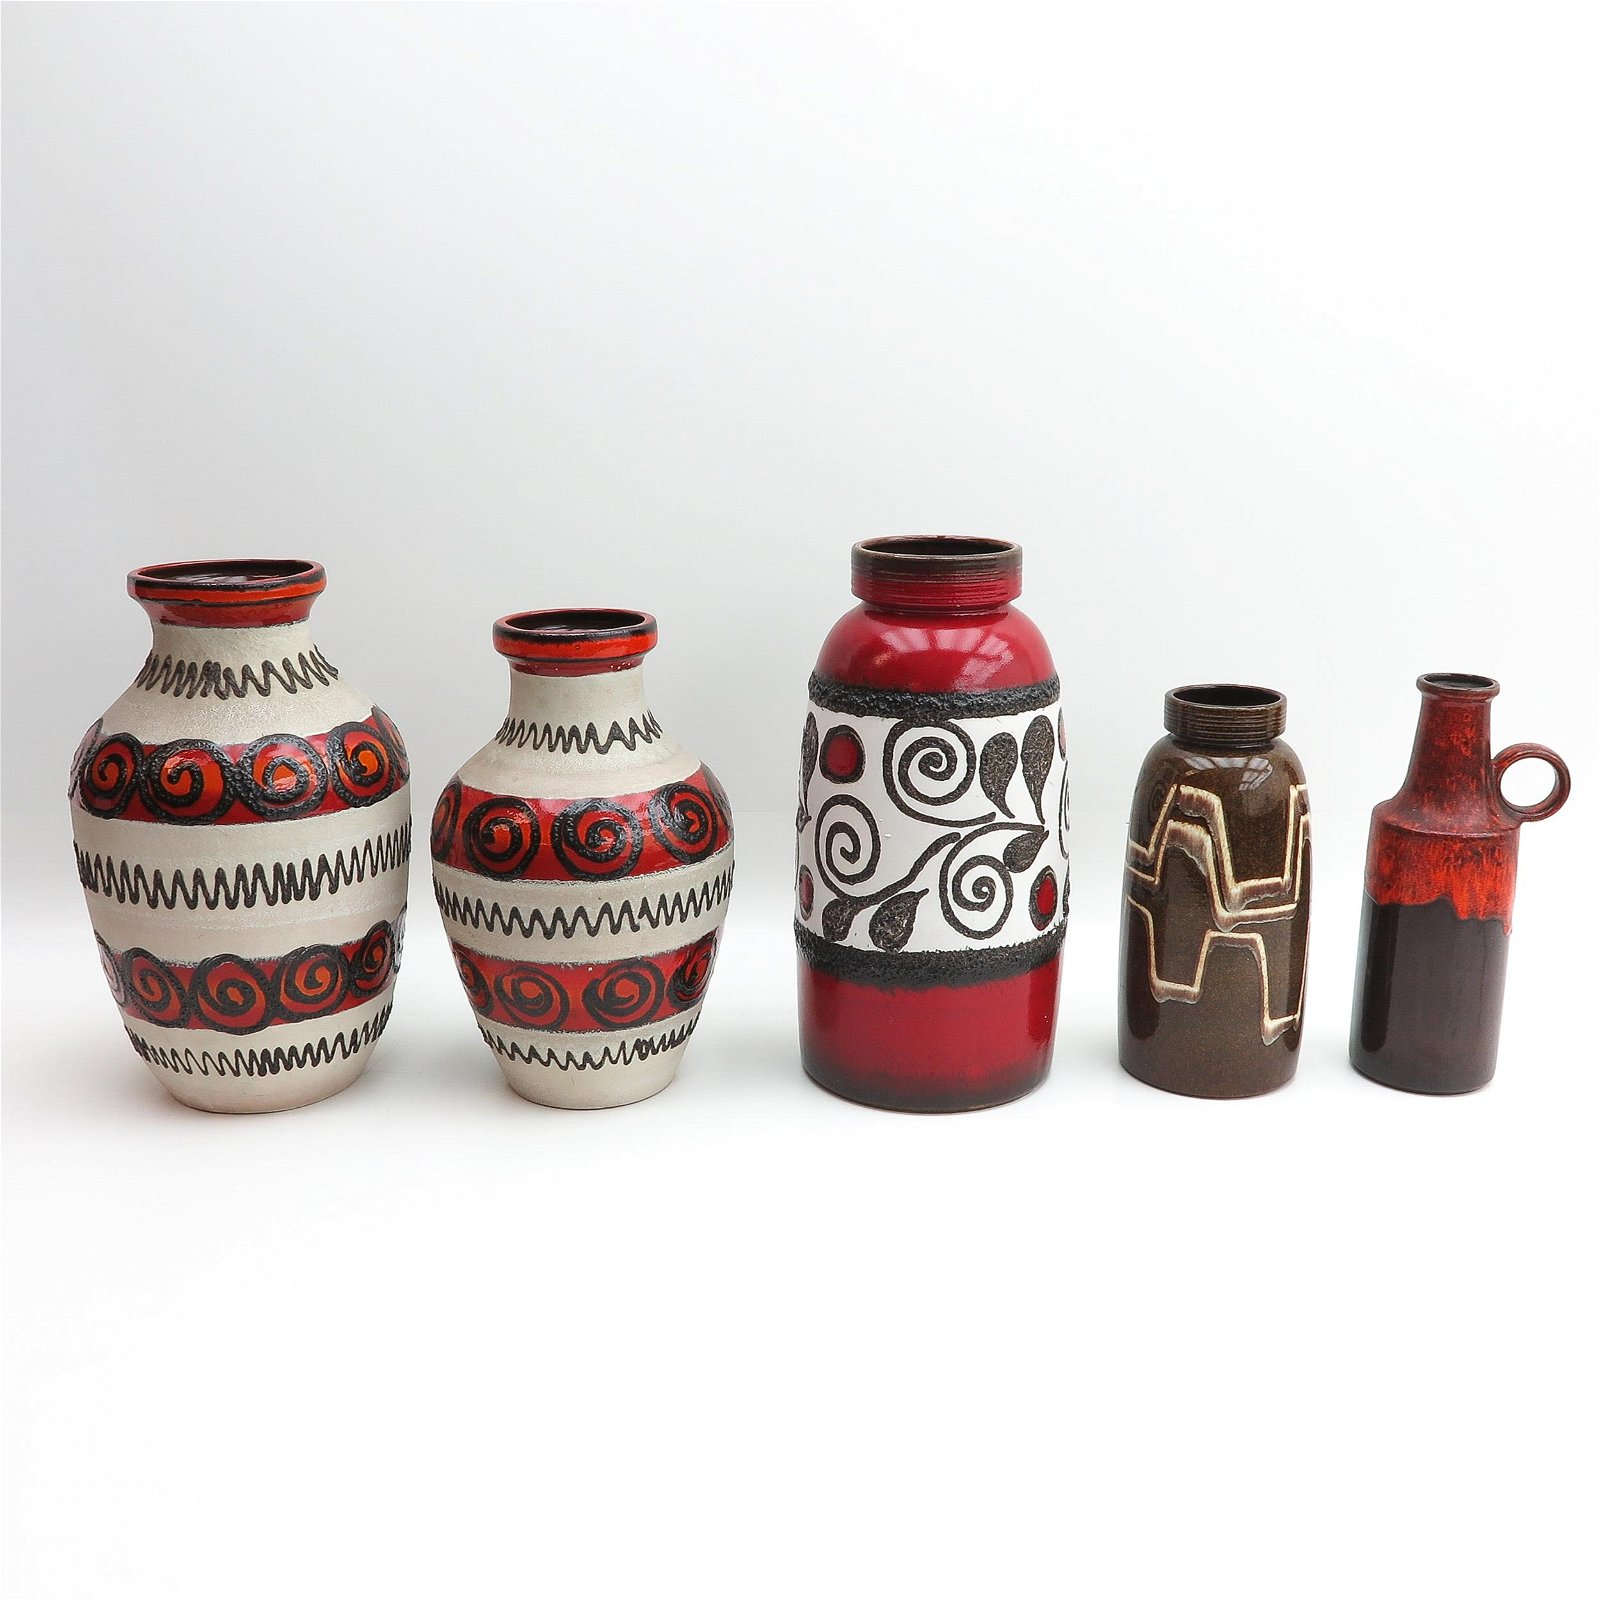 A Collection of 1970s Pottery